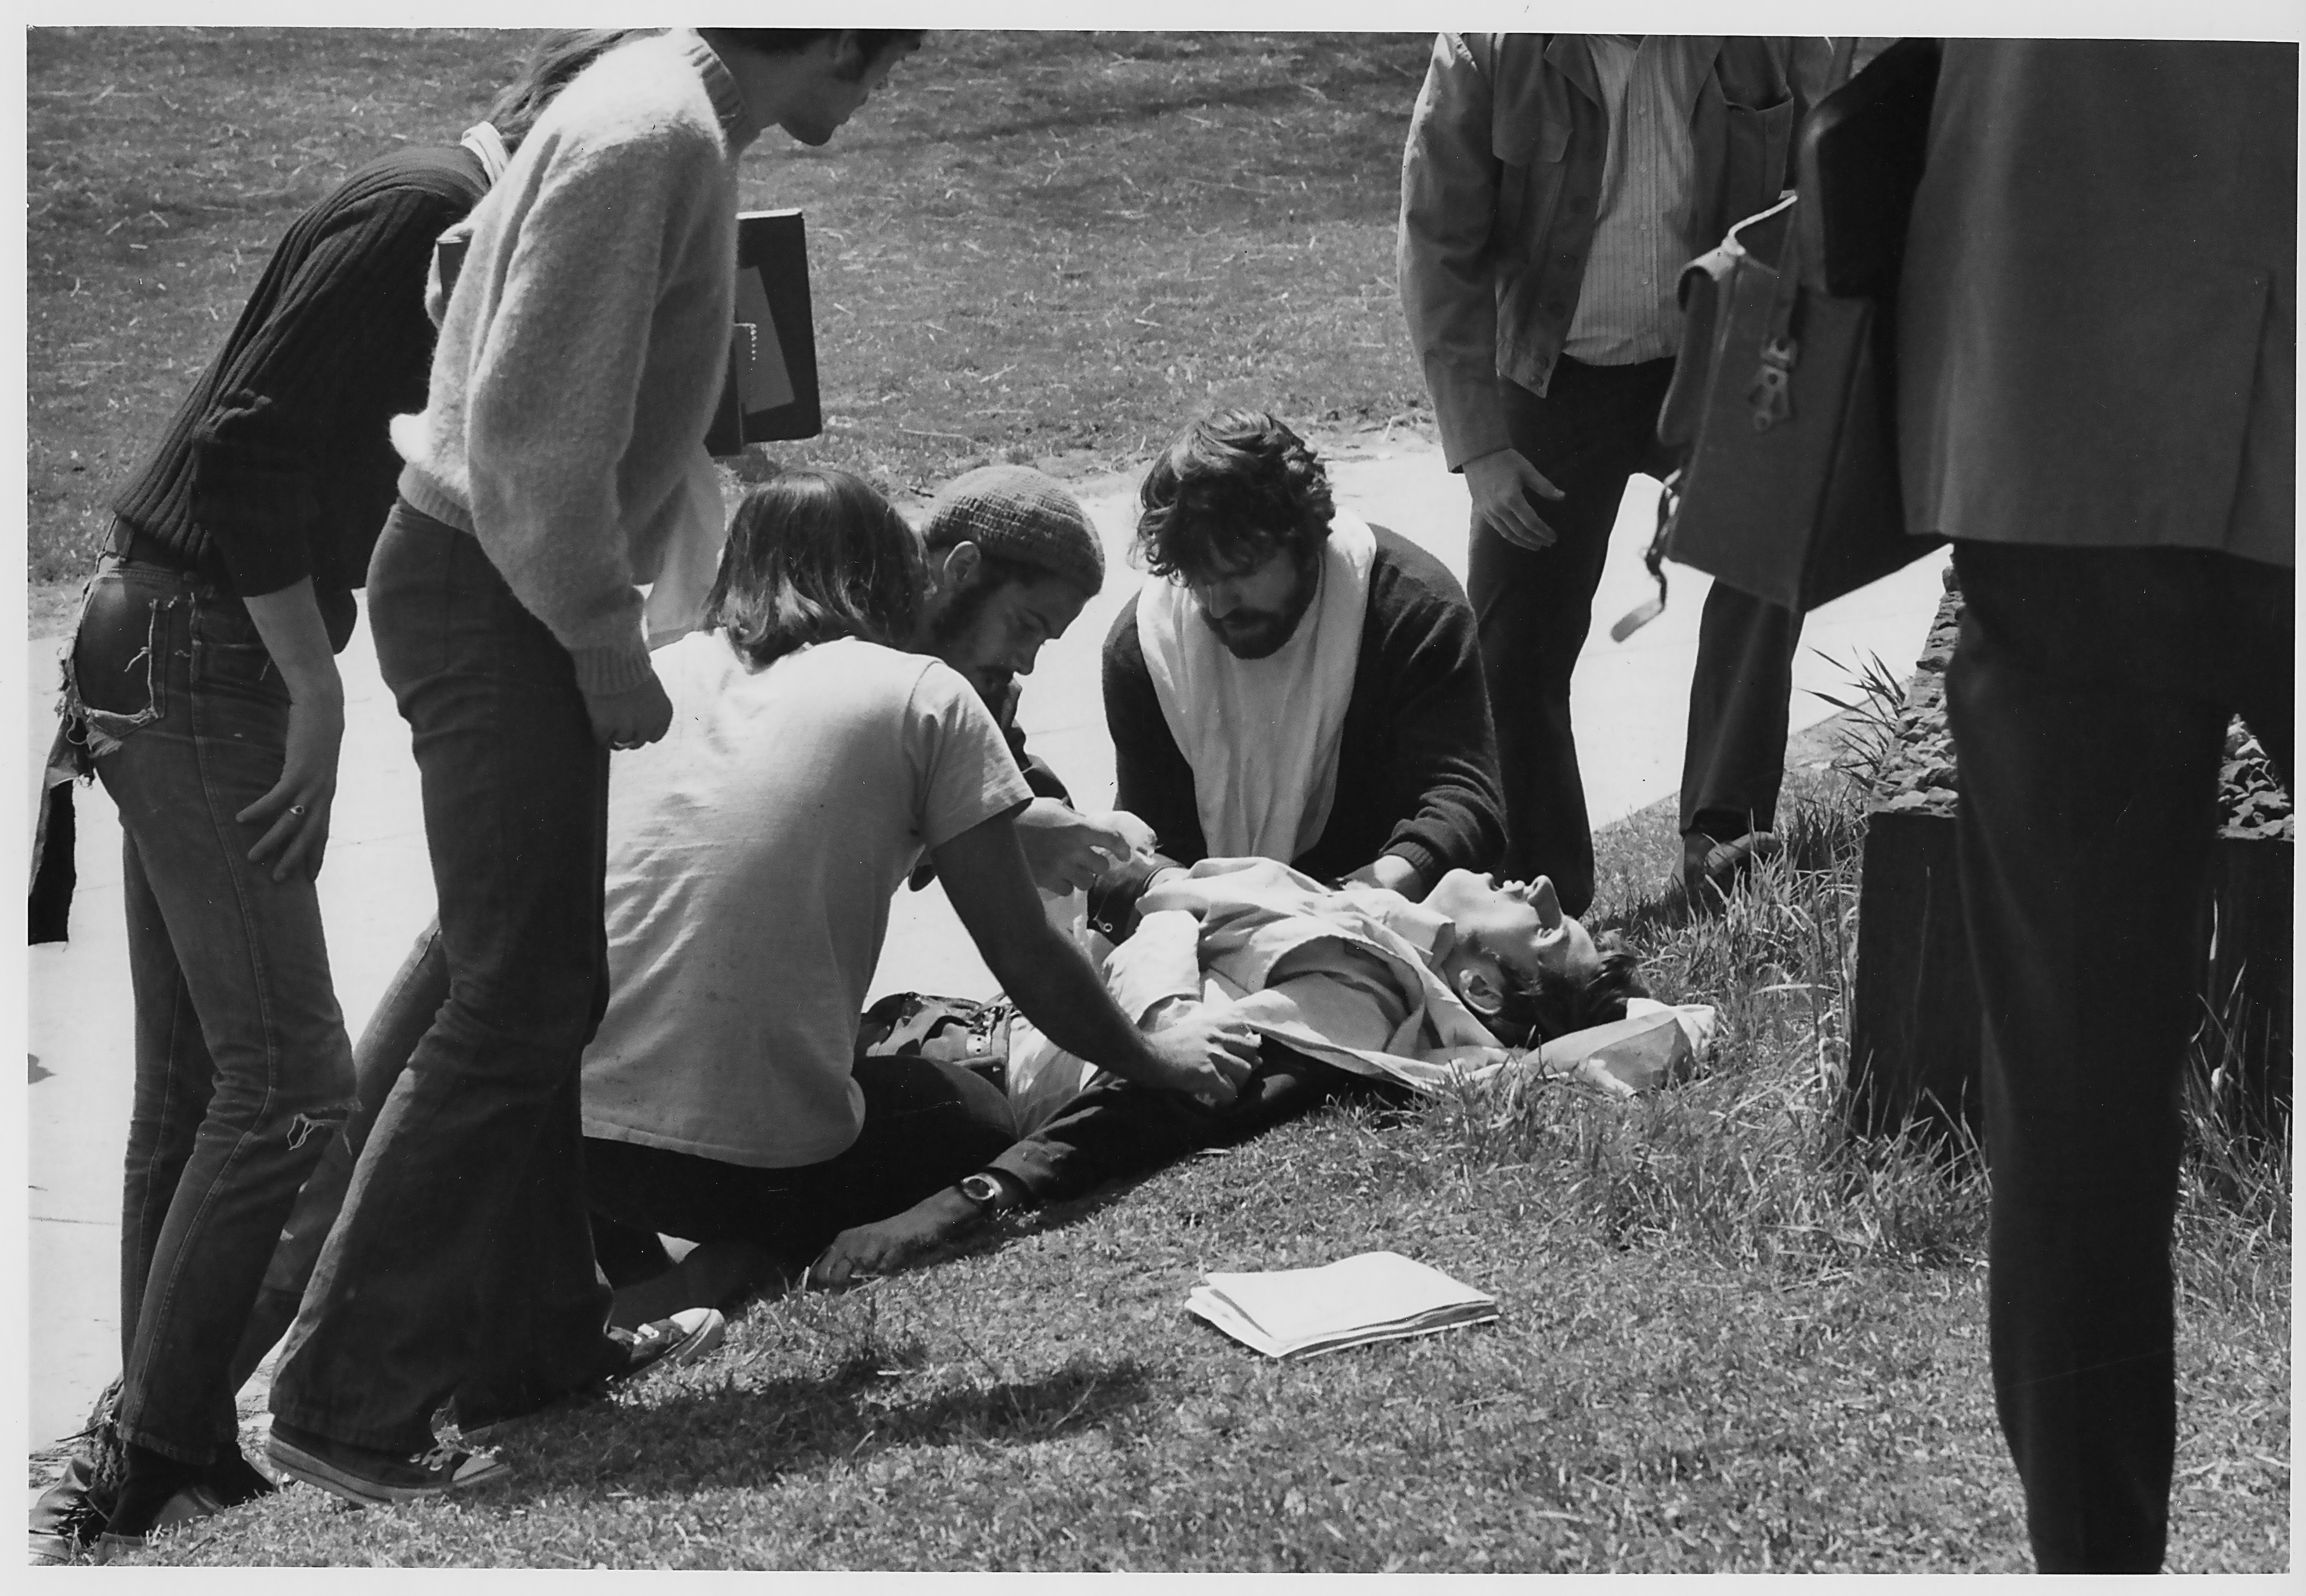 Kent state and jackson state how 1968 massacres are still seen in student activism